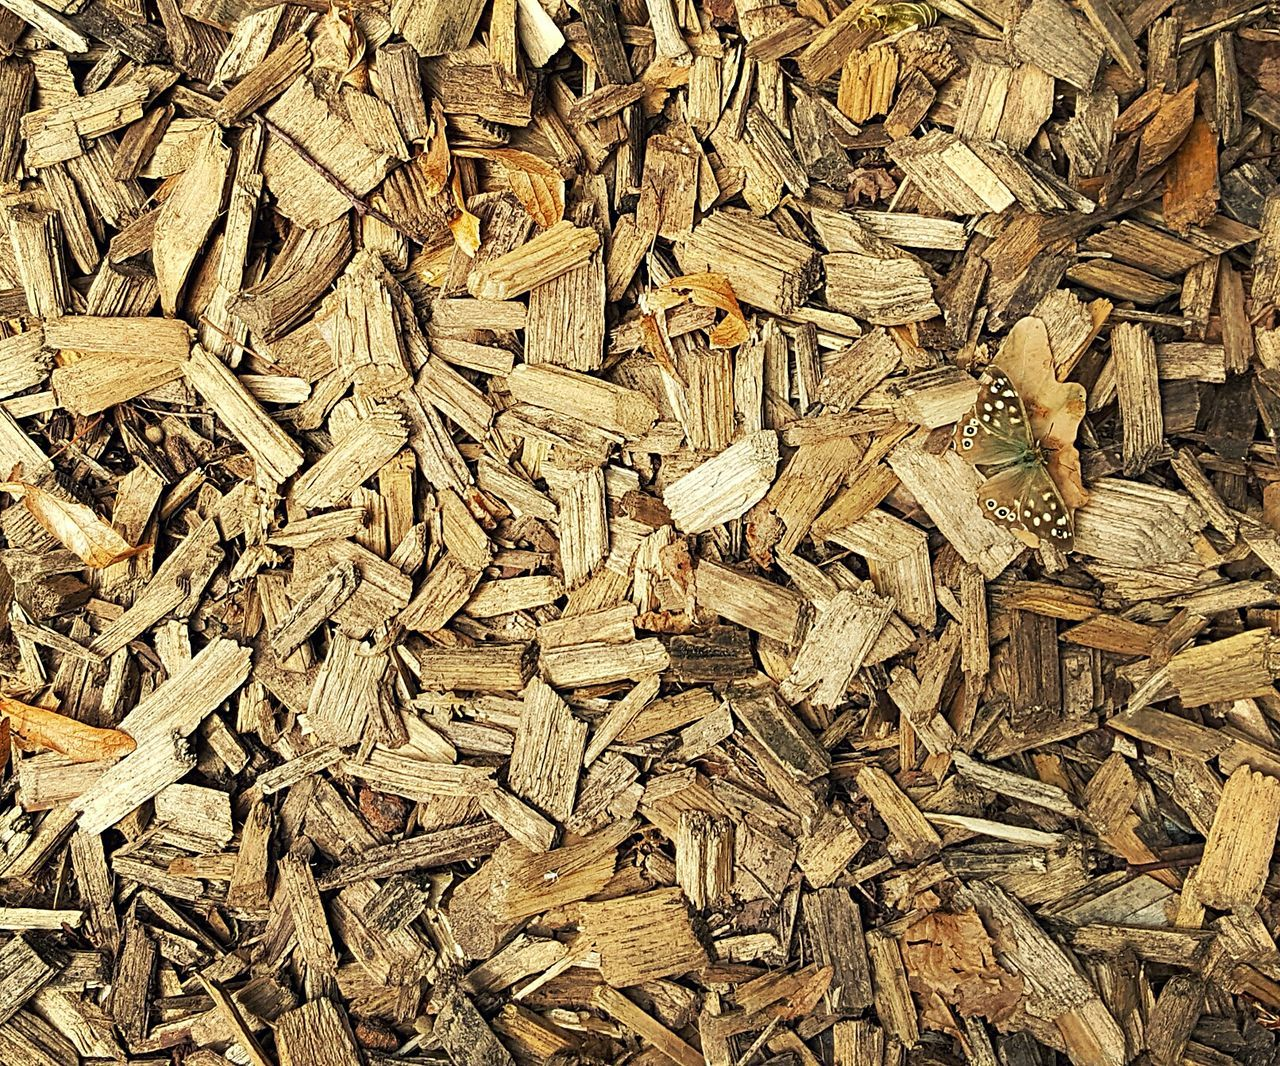 abundance, full frame, backgrounds, large group of objects, no people, lumber industry, day, close-up, outdoors